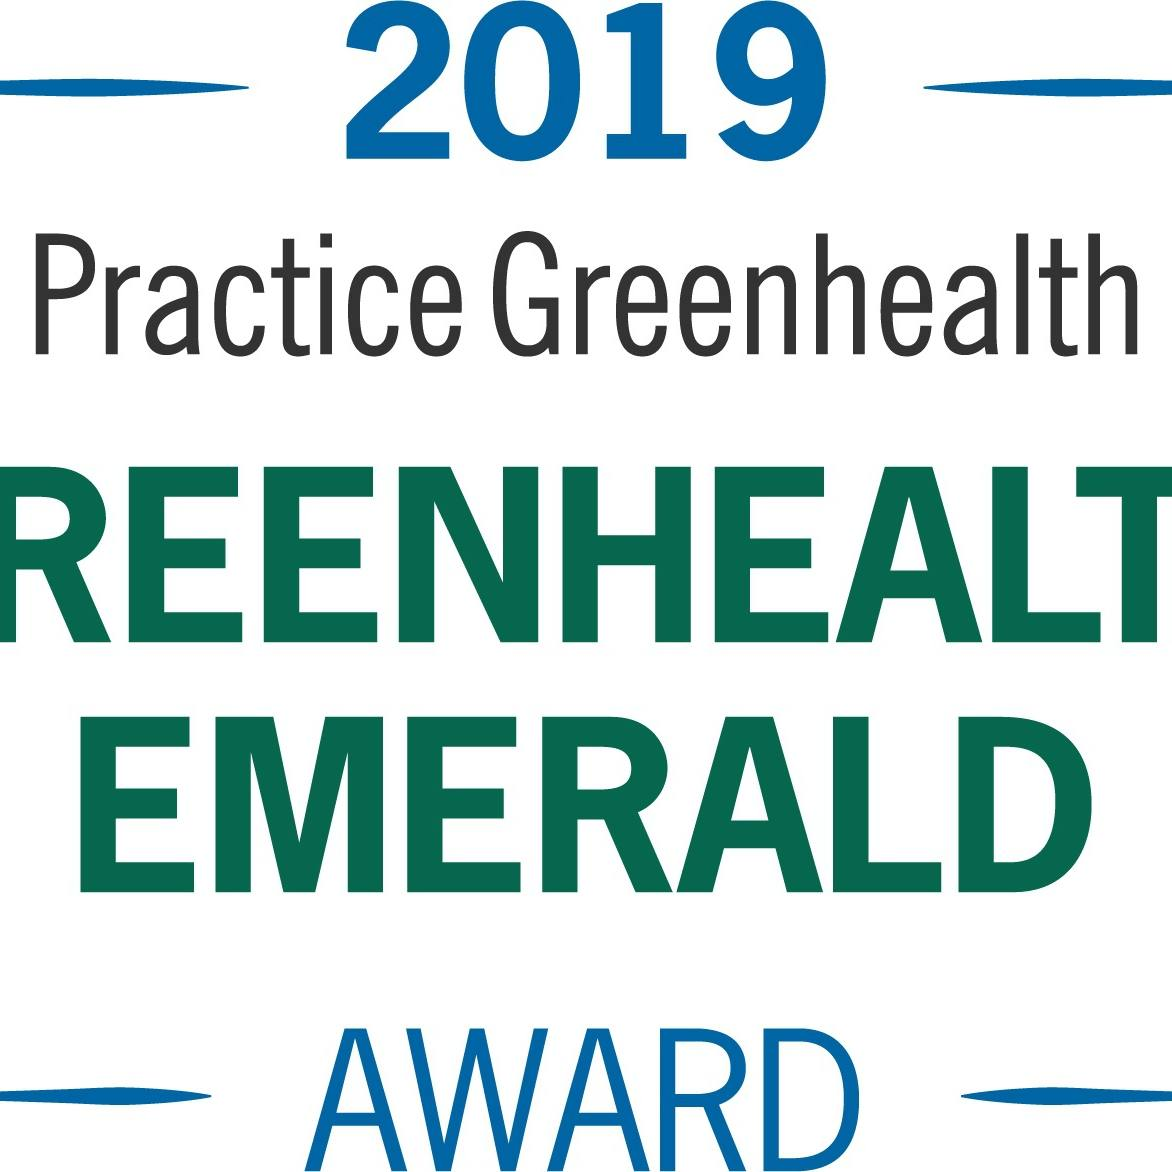 Practice Greenhealth Emerald Award 2019